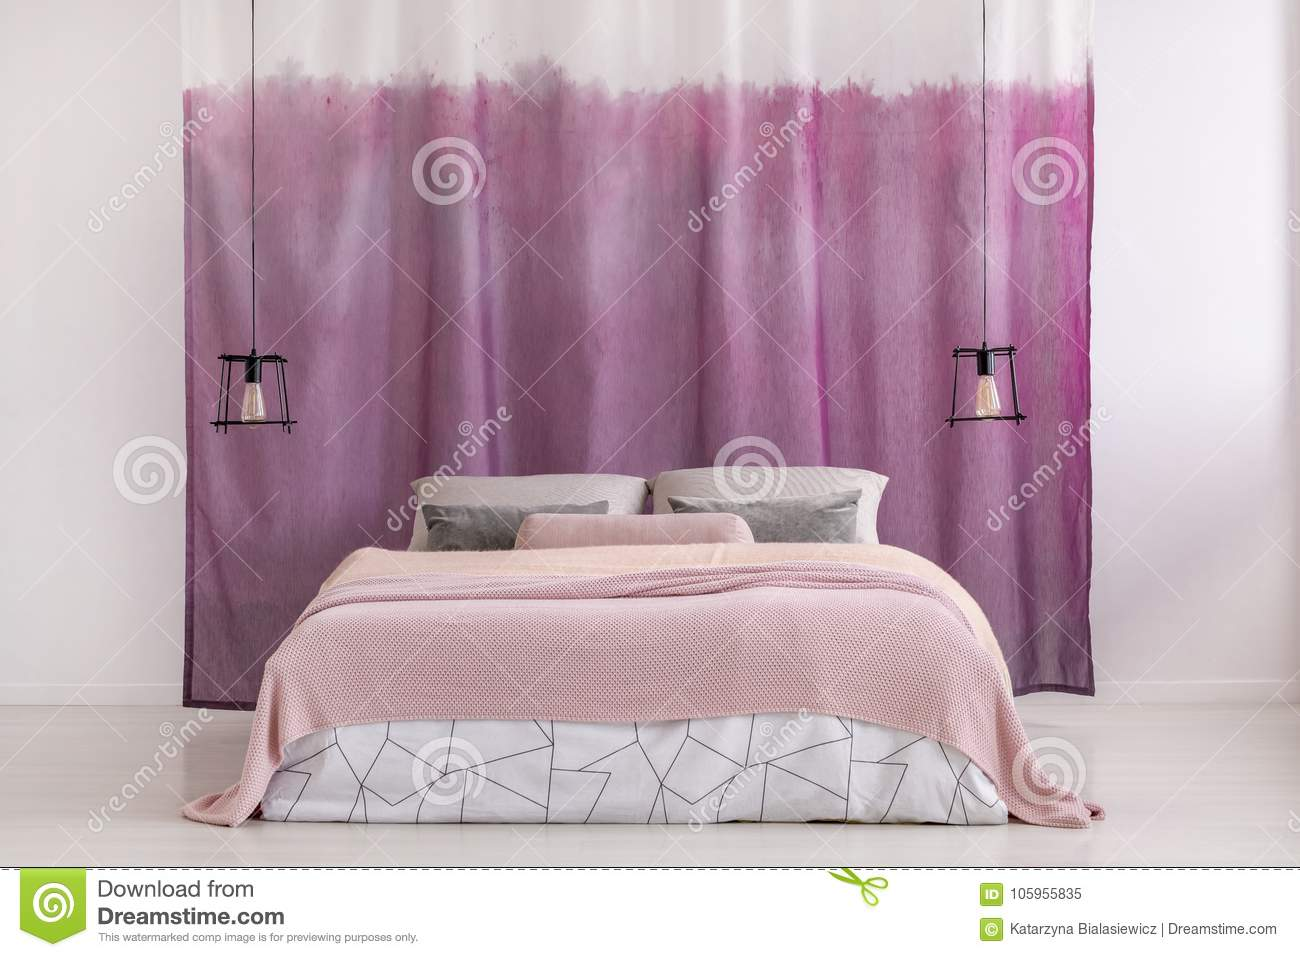 Pink Blanket On King Size Bed Against Violet And White Curtains In Bright  Bedroom With Lamps